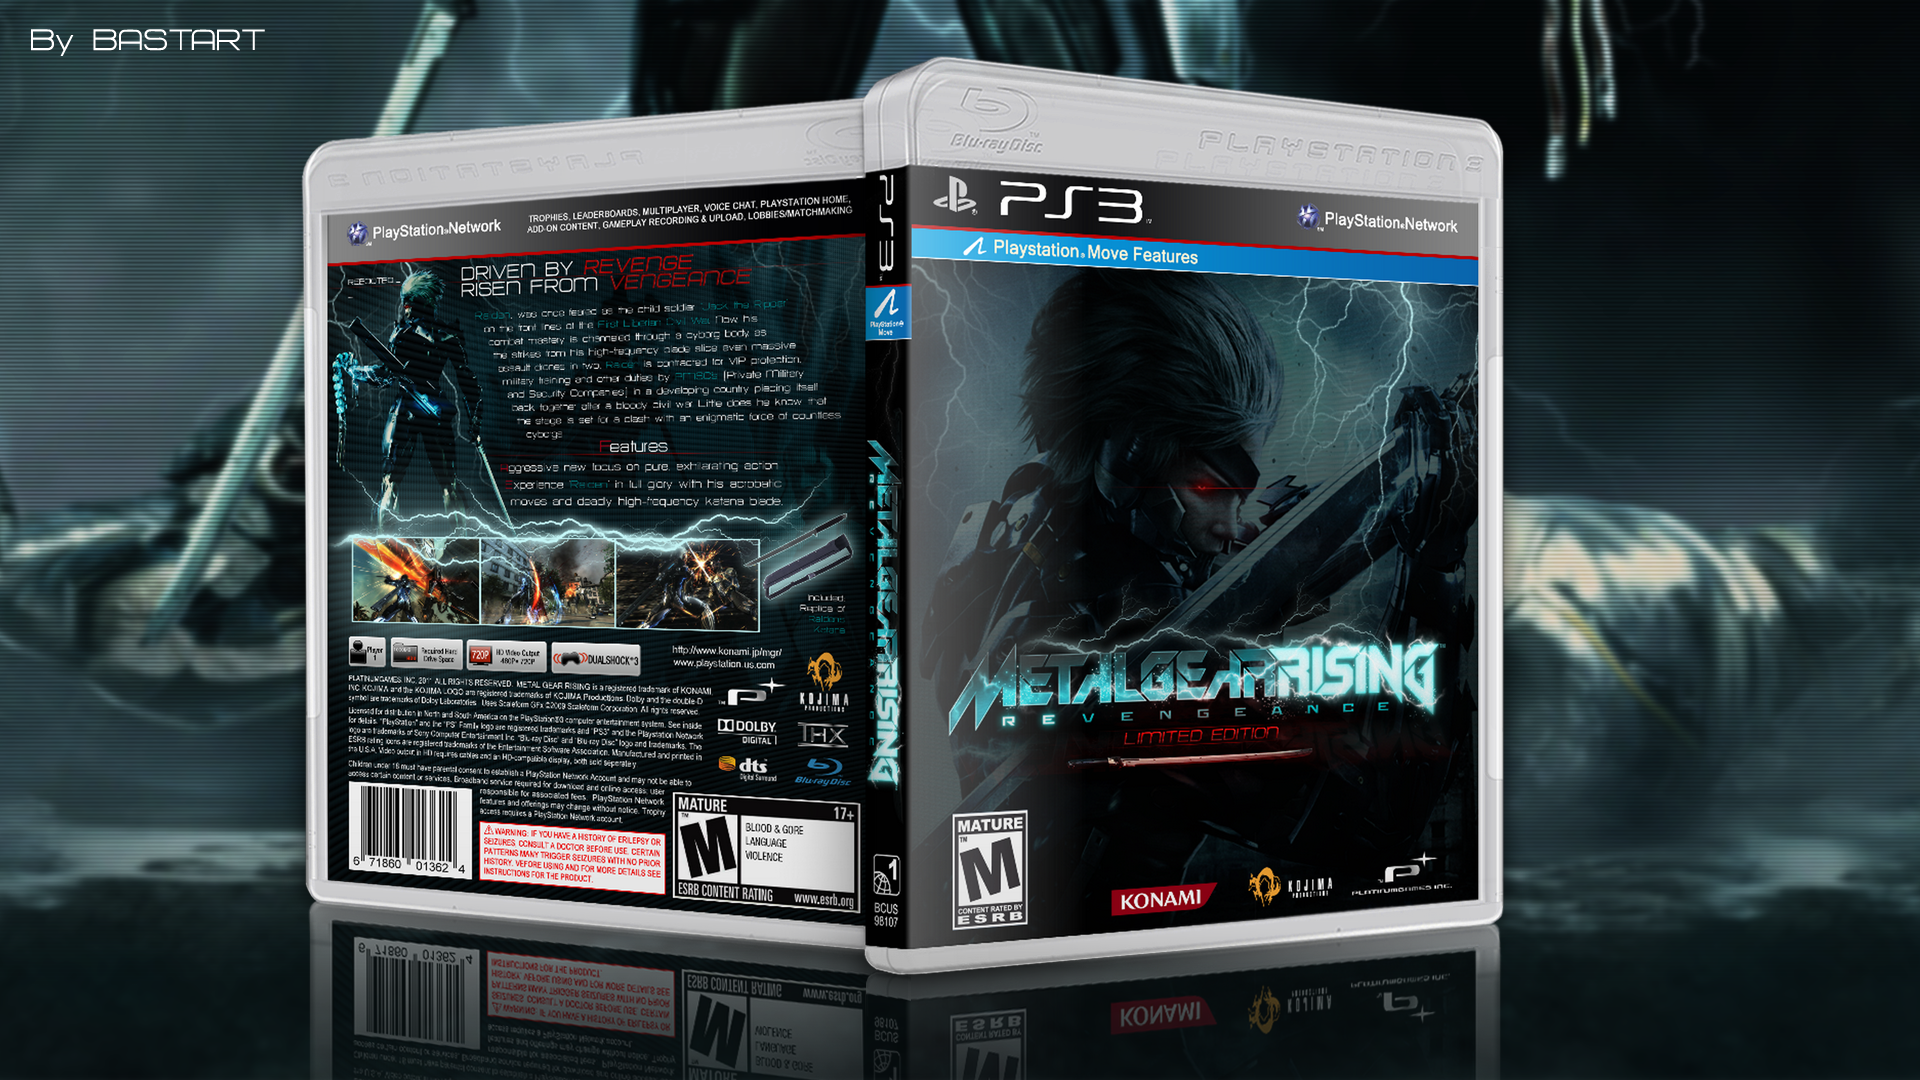 Metal Gear Rising: Revengeance (Limited Edition) box cover